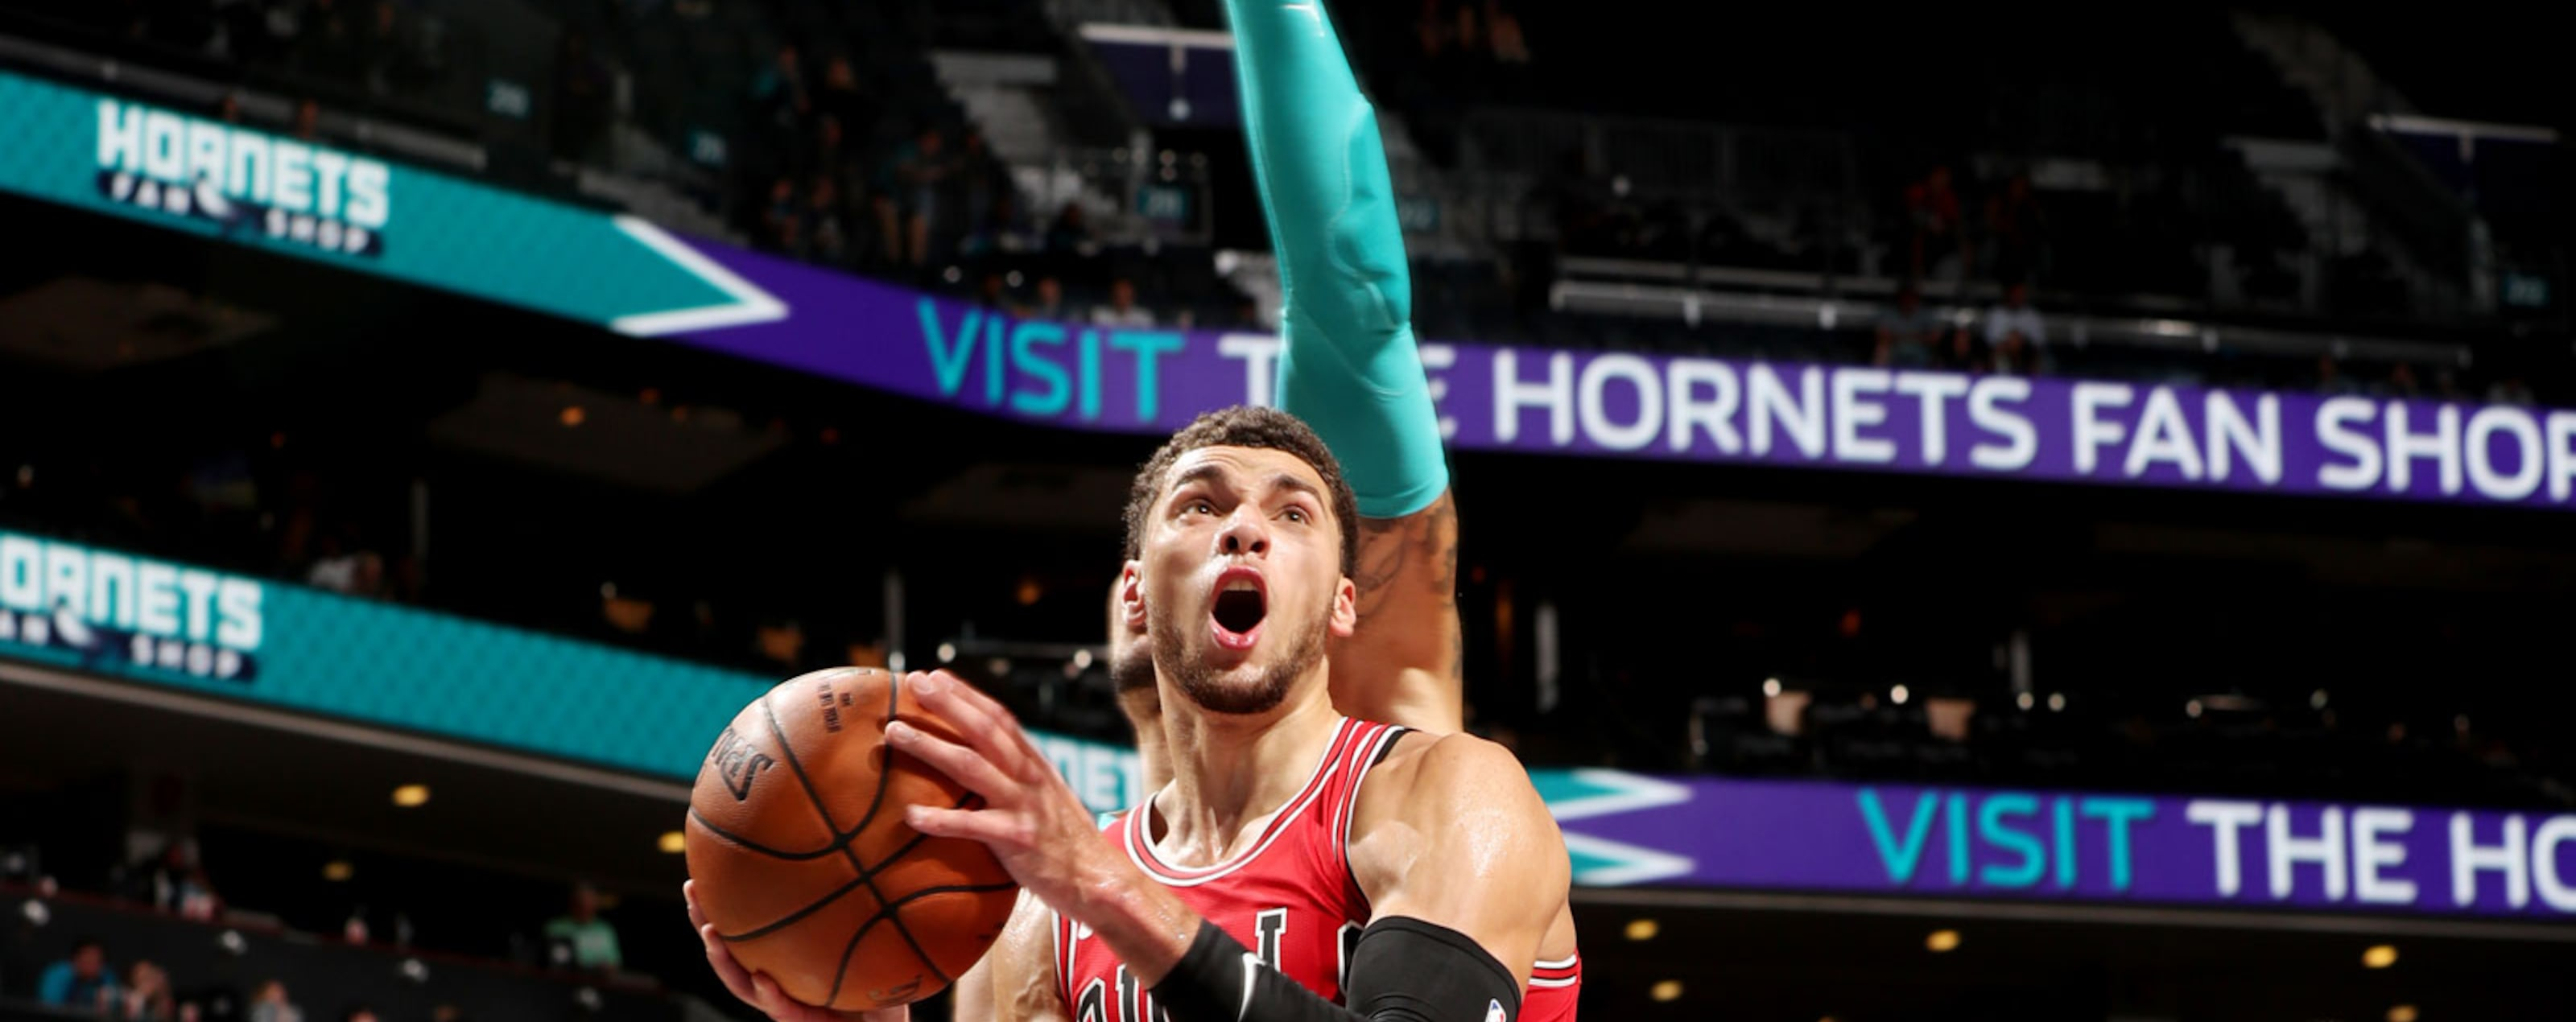 Zach LaVine #8 of the Chicago Bulls shoots the ball against the Charlotte Hornets during a pre-season game on October 8, 2018 at Spectrum Center in Charlotte, North Carolina.